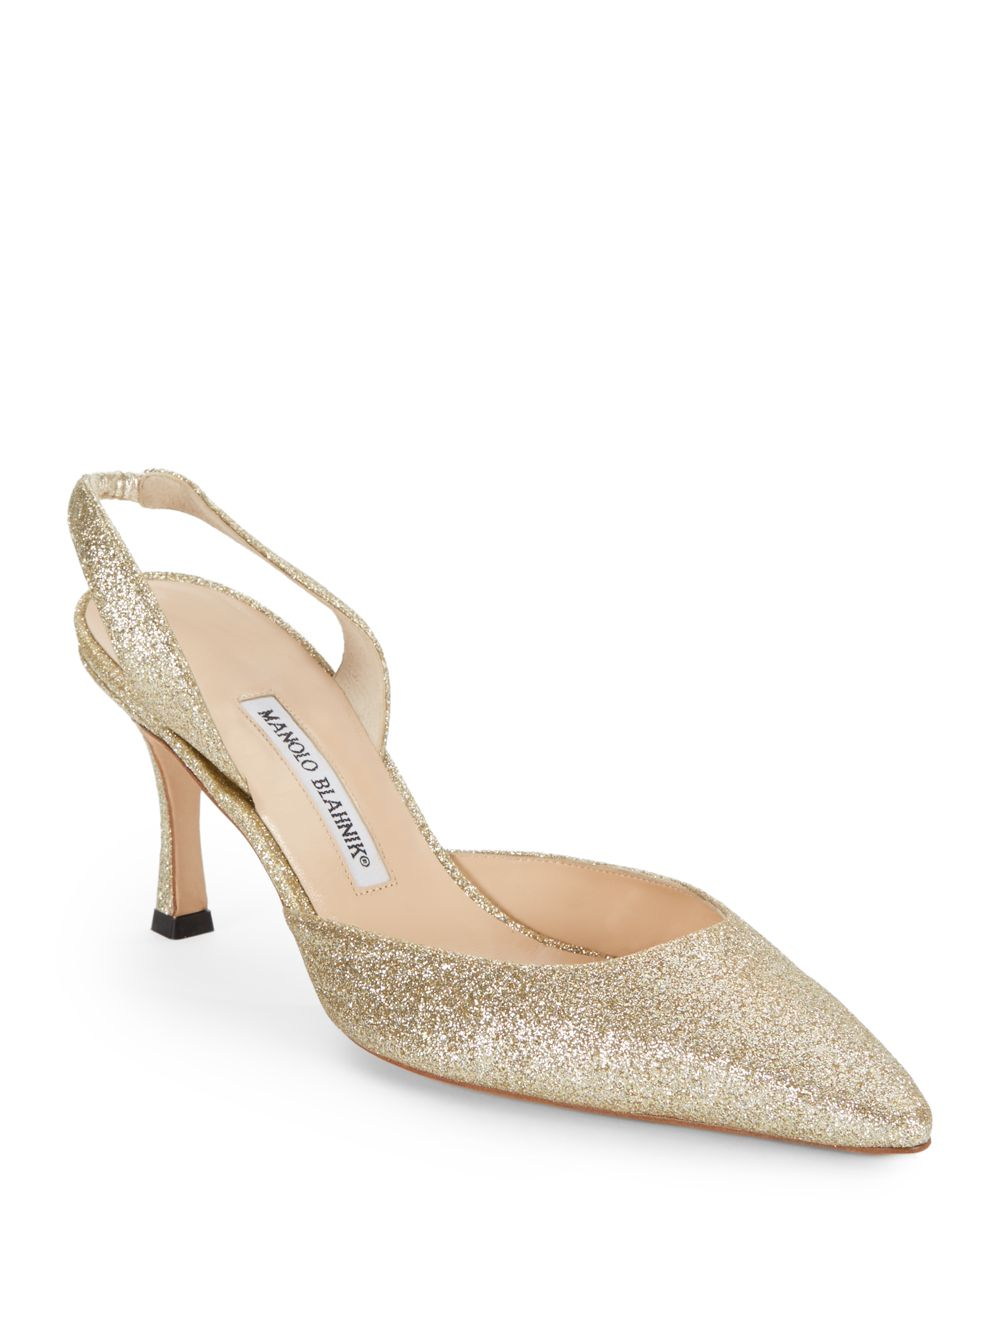 Manolo Blahnik Metallic Carolyne Slingback Pumps view online from china cheap online cheap websites outlet Manchester llZdy